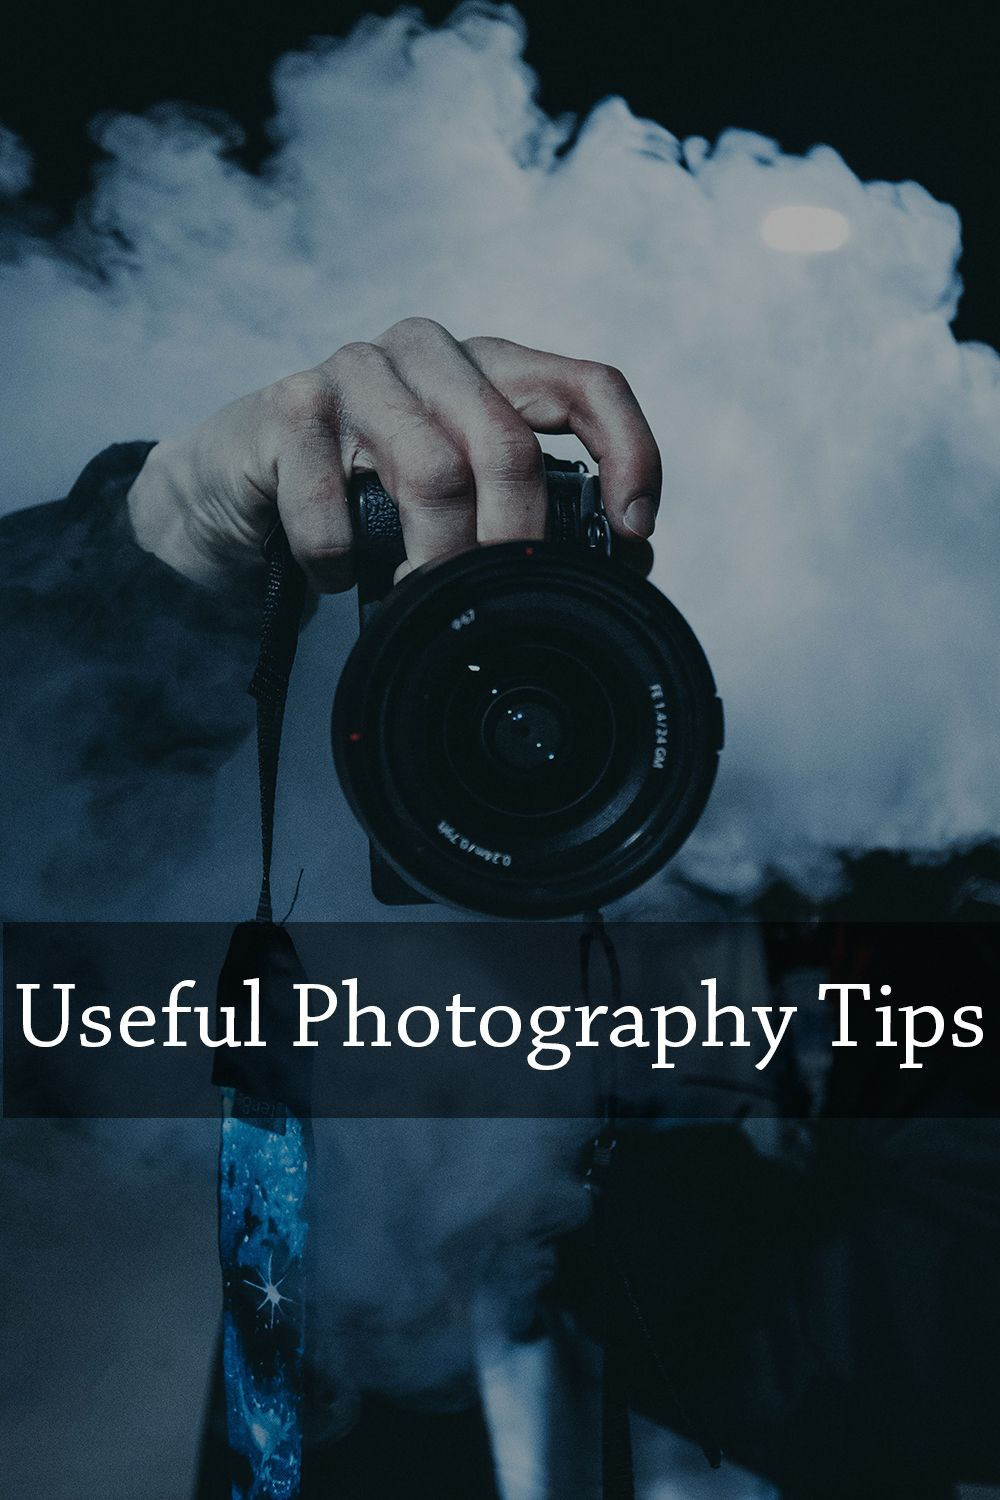 Are you confused by any of the terminology? Do you want to easily control your camera and finally get rid of the confusion about focal length, aperture, shutter speed, and other settings? #photographytips #tips #photographer #tipsforphotographer #photographyskills